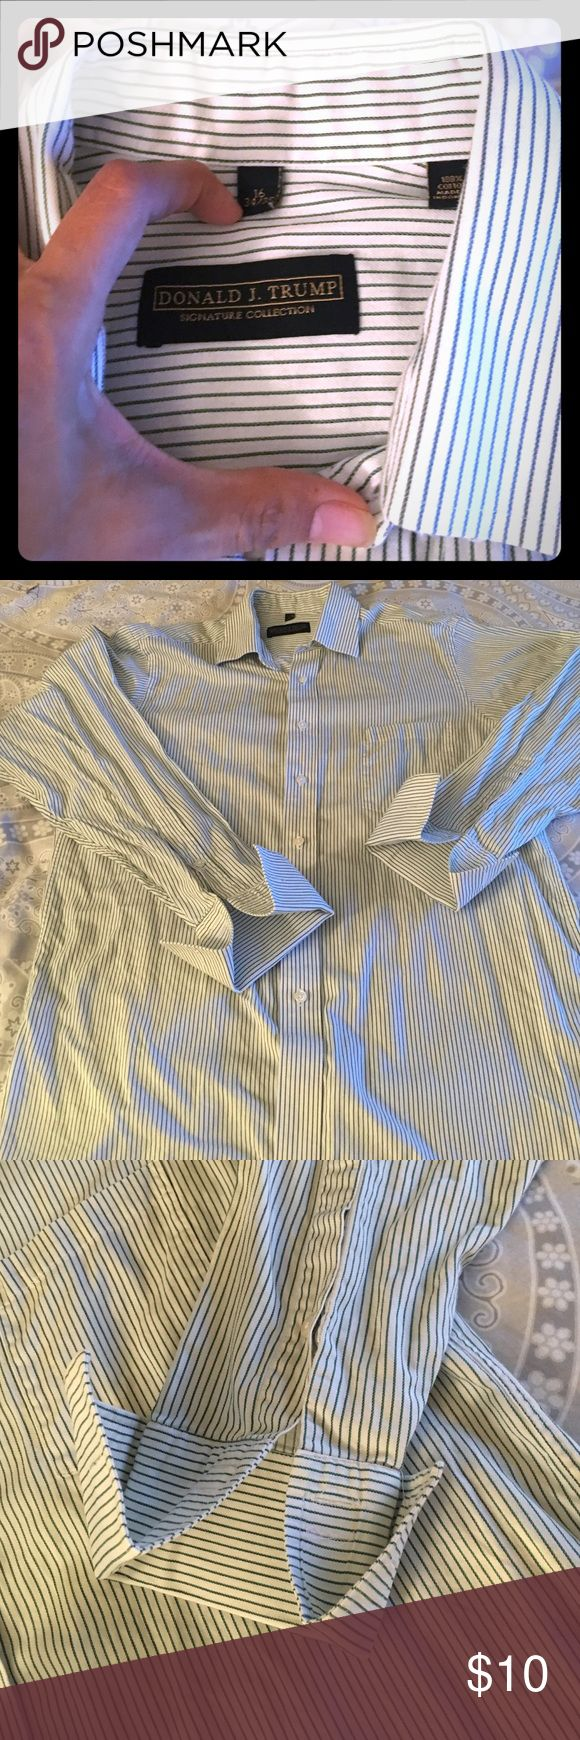 Donald J Trump shirt 16 34/35 size . New . 100% cotton . The only imperfection that has show in pic 4 . Not noticeable at all . New never been washed or worn . Donald J Trump Shirts Dress Shirts